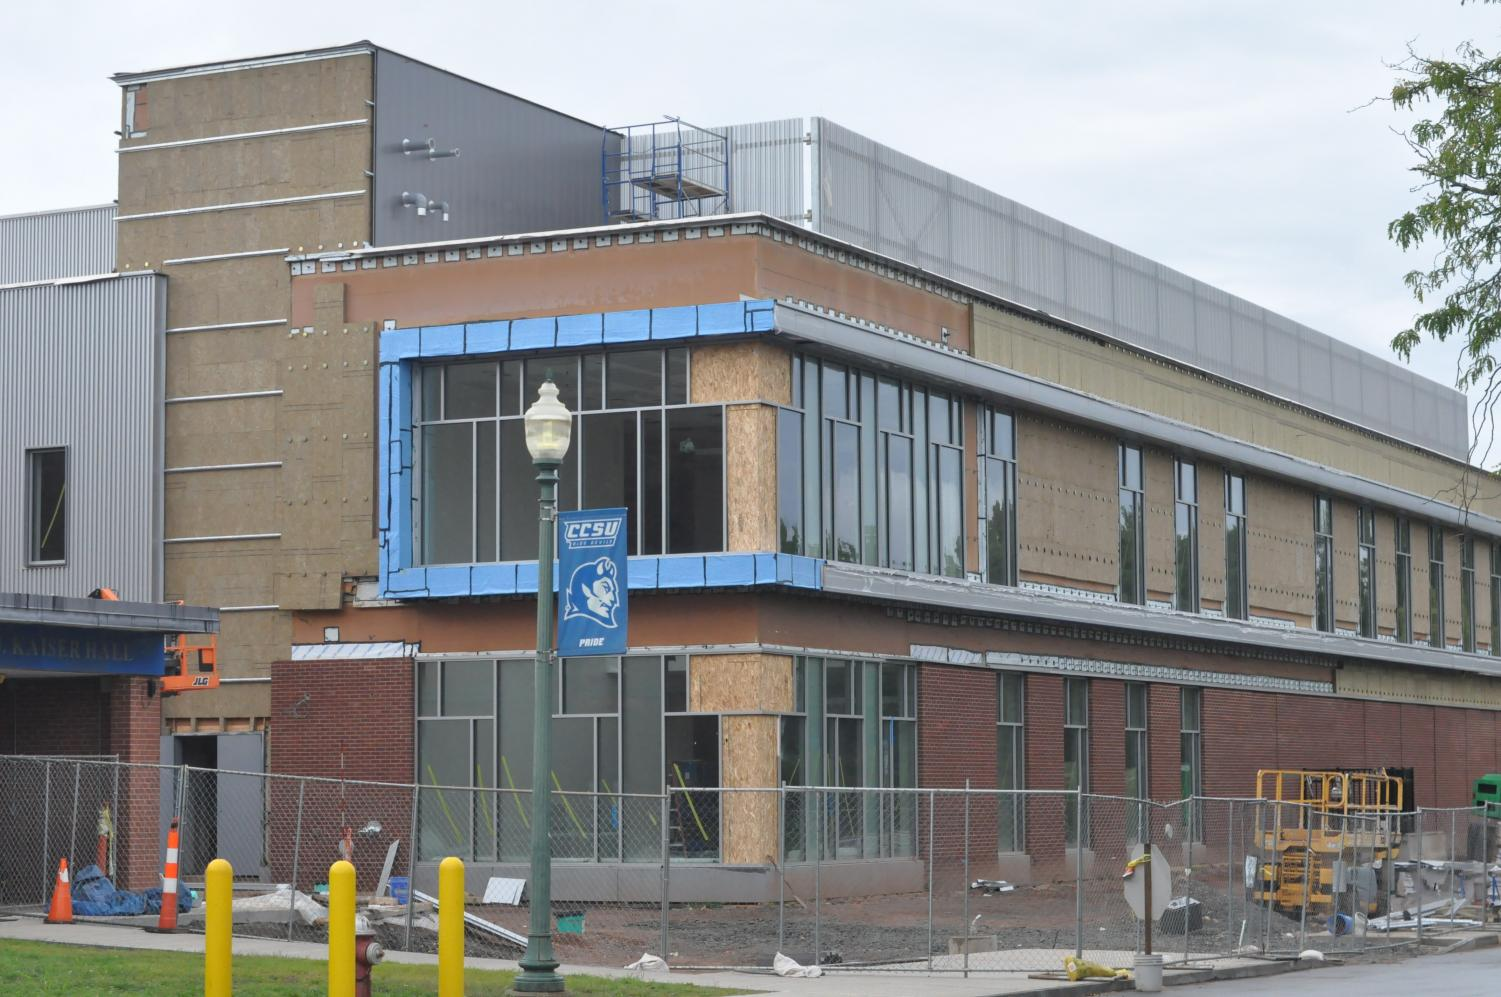 The former Bubble is being transformed into a new, state-of-art recreation center.